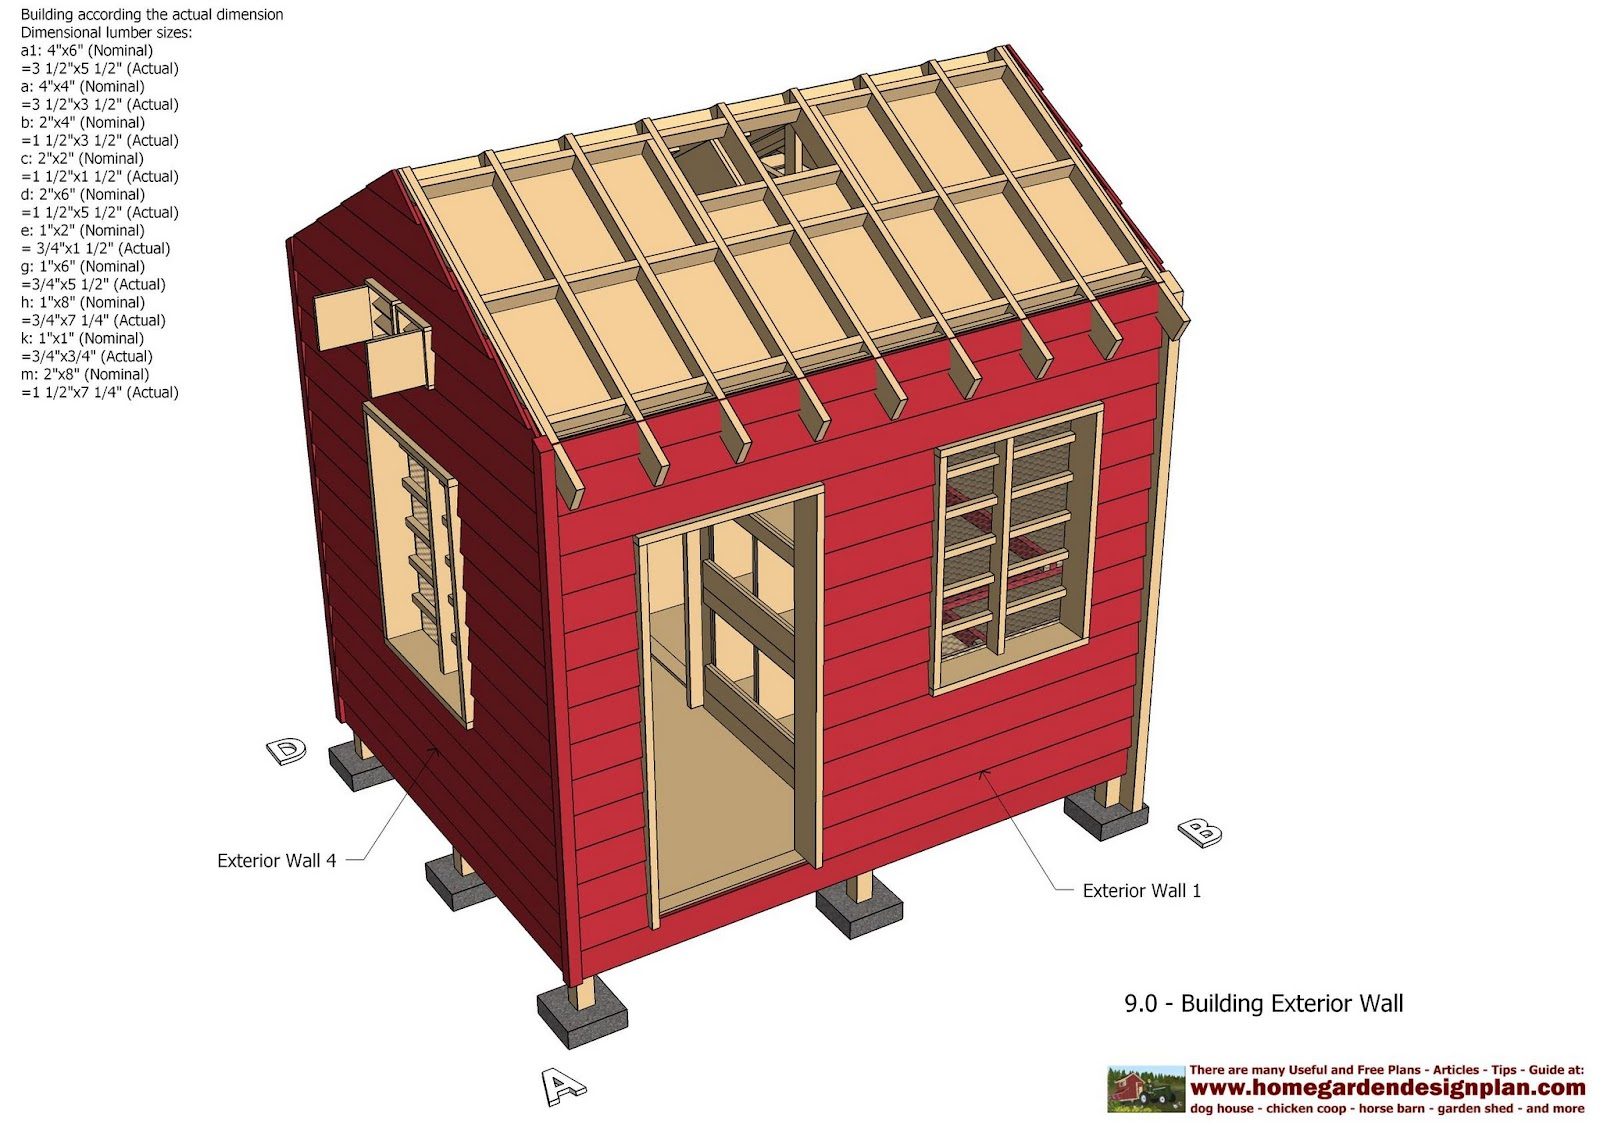 cb211 combo chicken coop garden shed plans chicken coop plans - Chicken Co Op Plans And Greenhouse